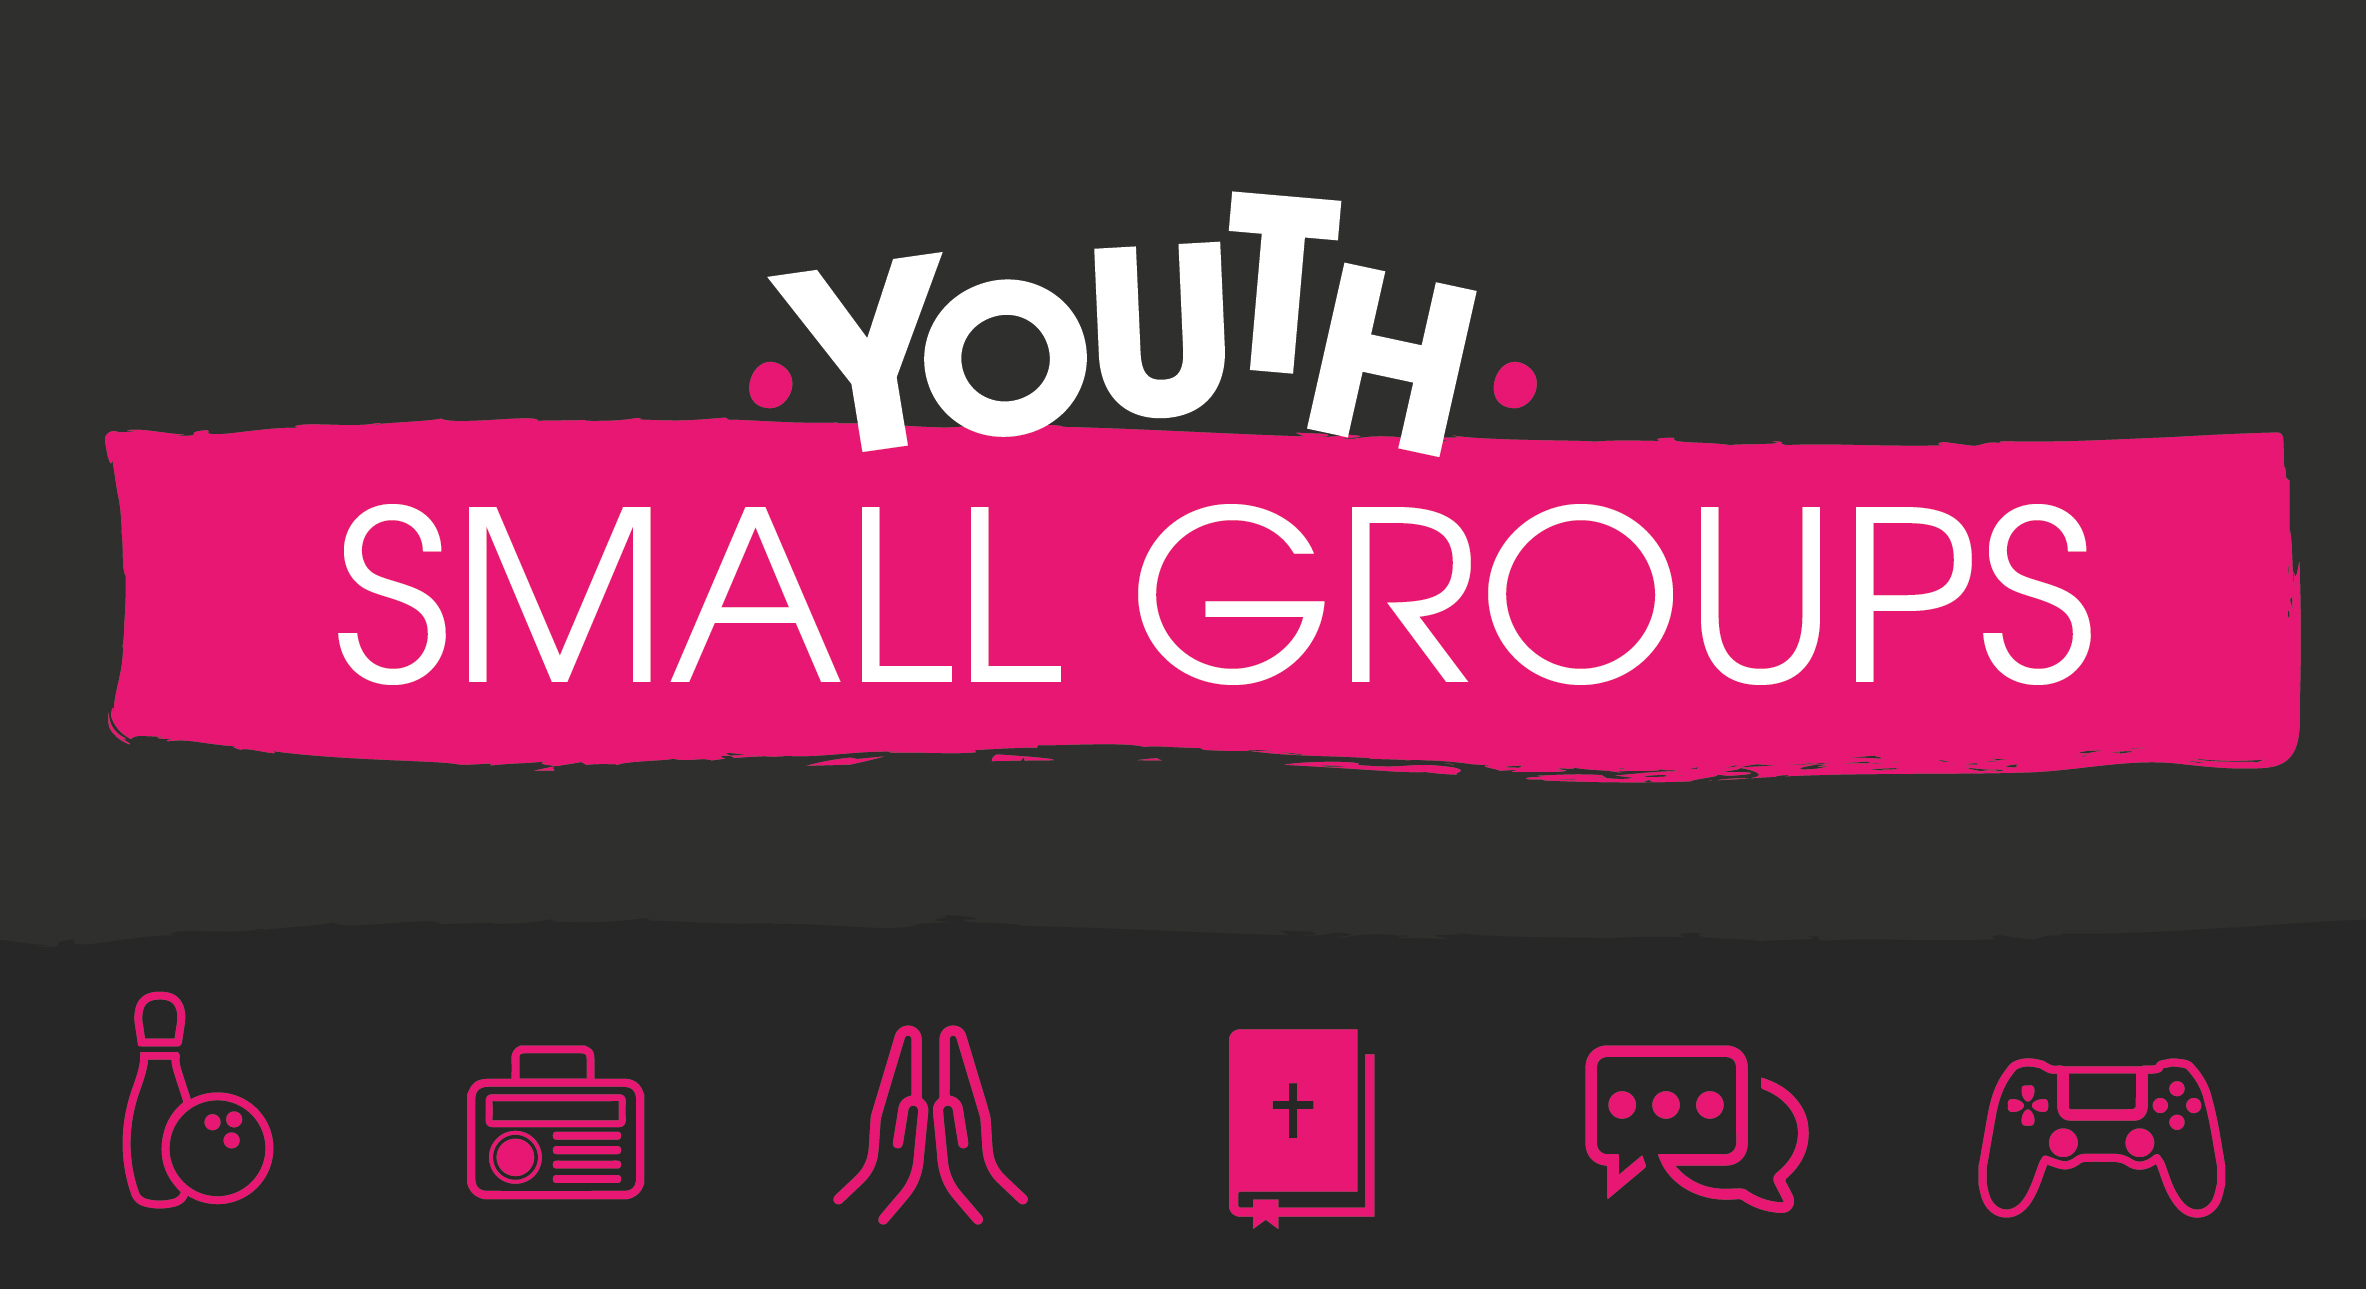 Youth Small groups-03.jpg